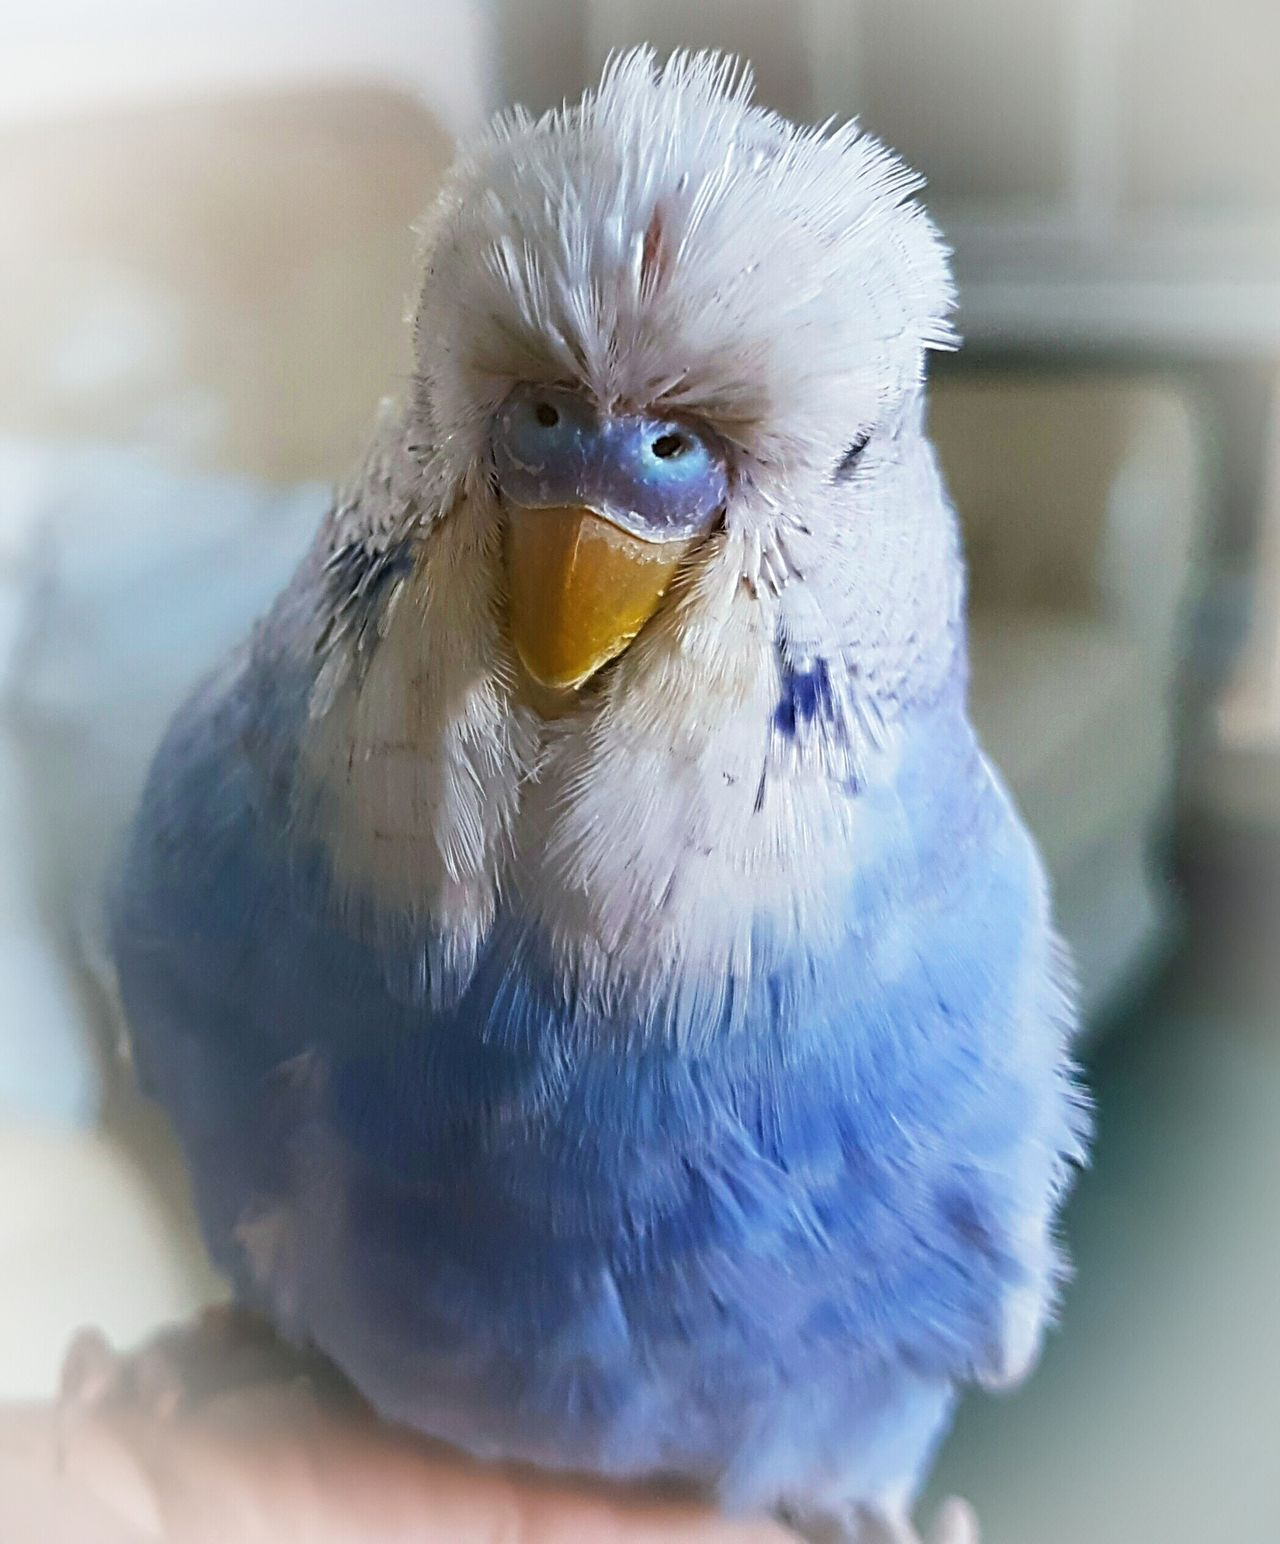 Animal Themes Bird One Animal Budgerigar Indoors  No People Close-up Blue Beauty In Nature Beautiful Boy Alfie Cracking Looking Bird! Pet Pets Birds Budgielove Budgie Budgies Budgie Collection